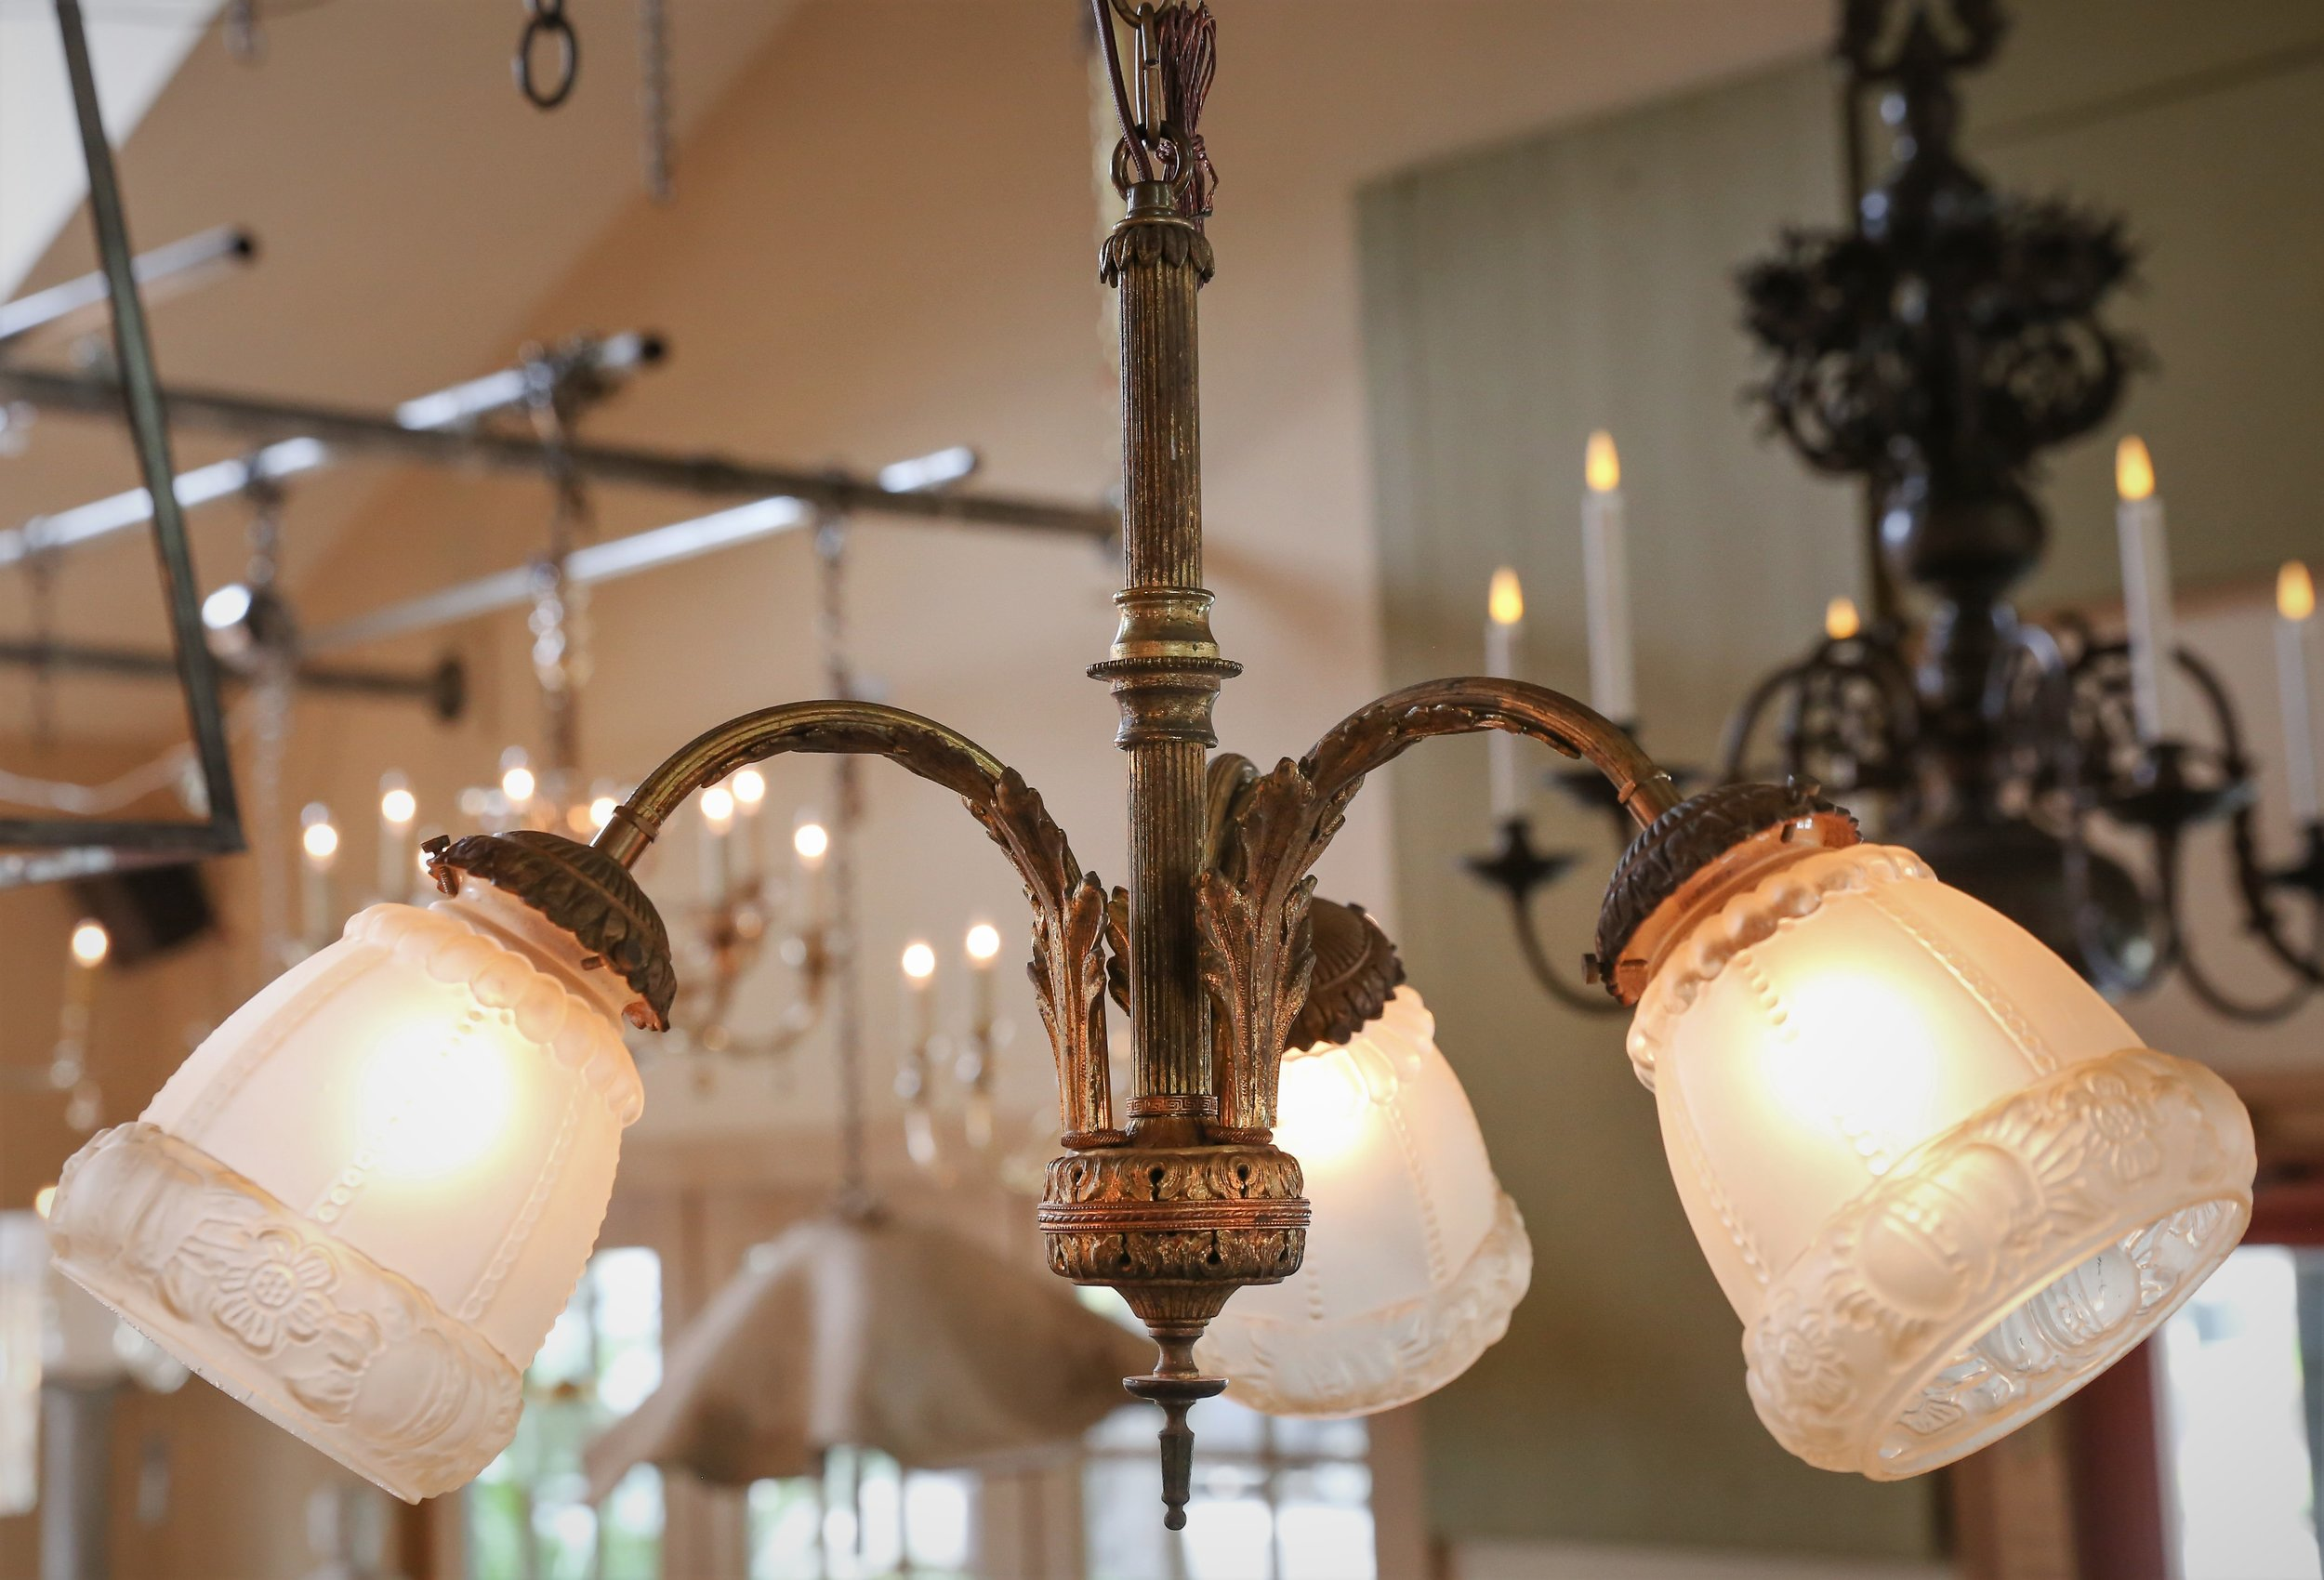 ANTIQUE ONE OF A KIND FRENCH CHANDELIER, CIRCA 1880'S